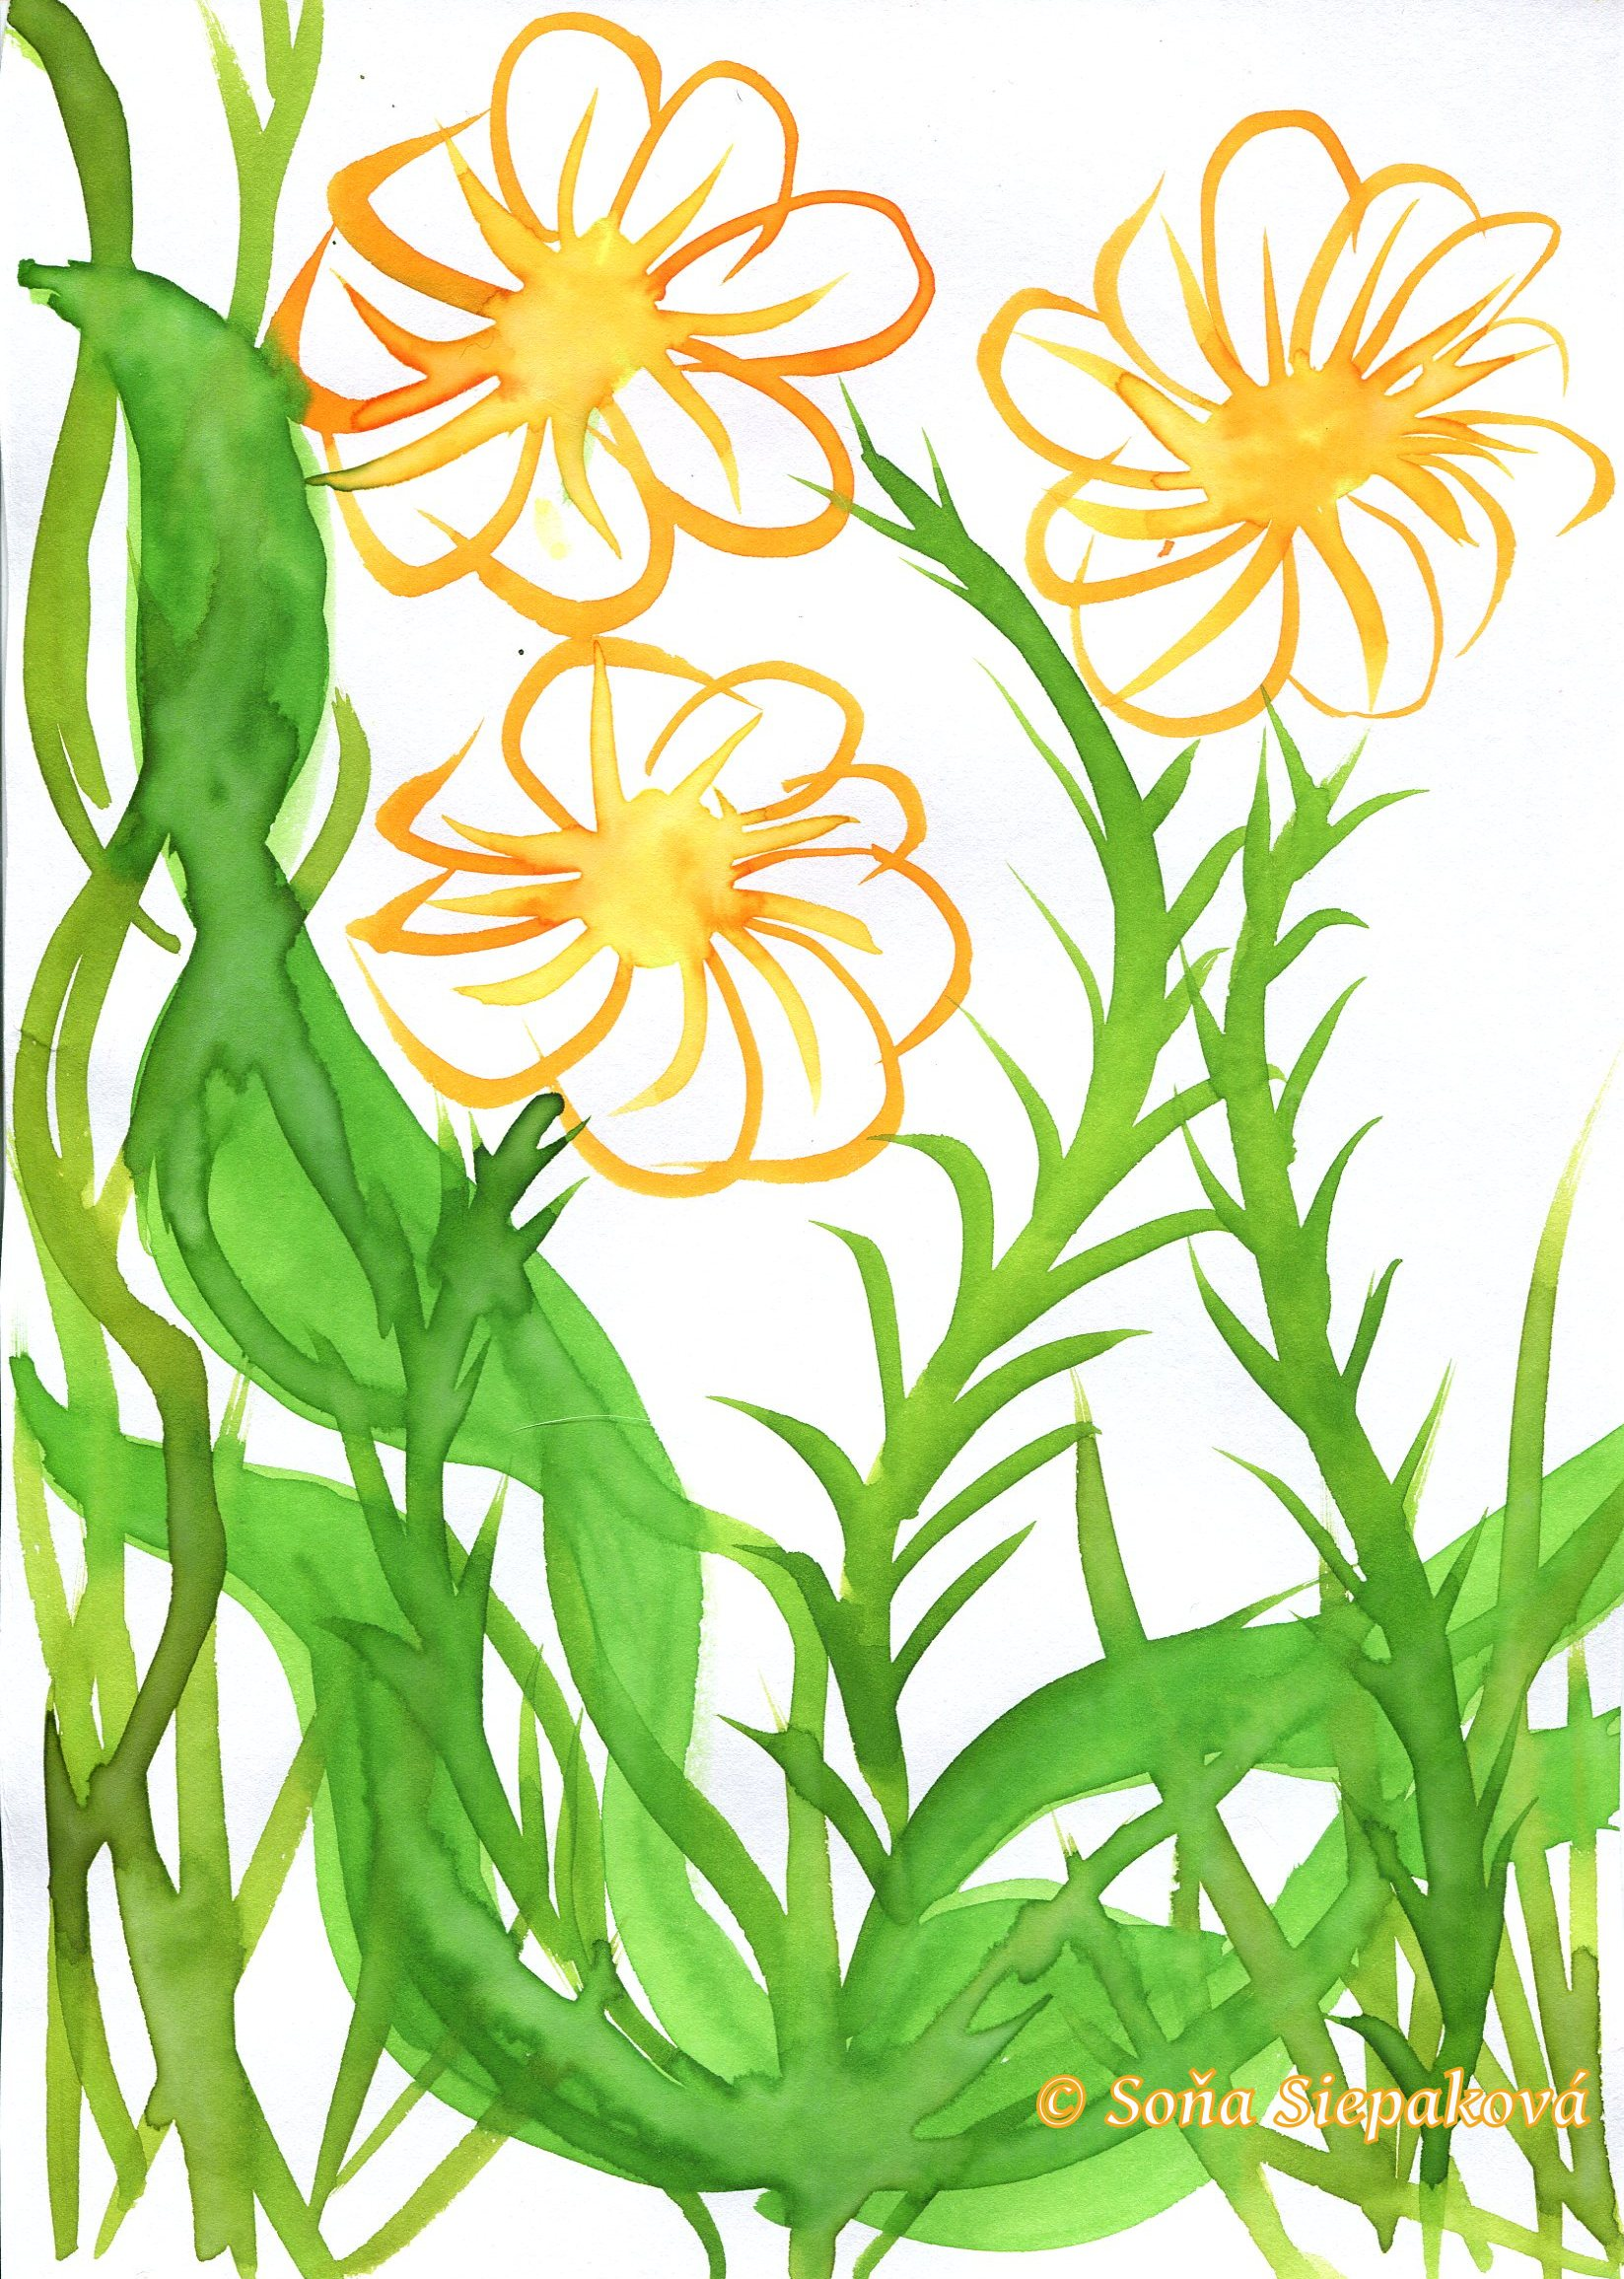 Yellow Flowers. Illustration by Sona Siepakova